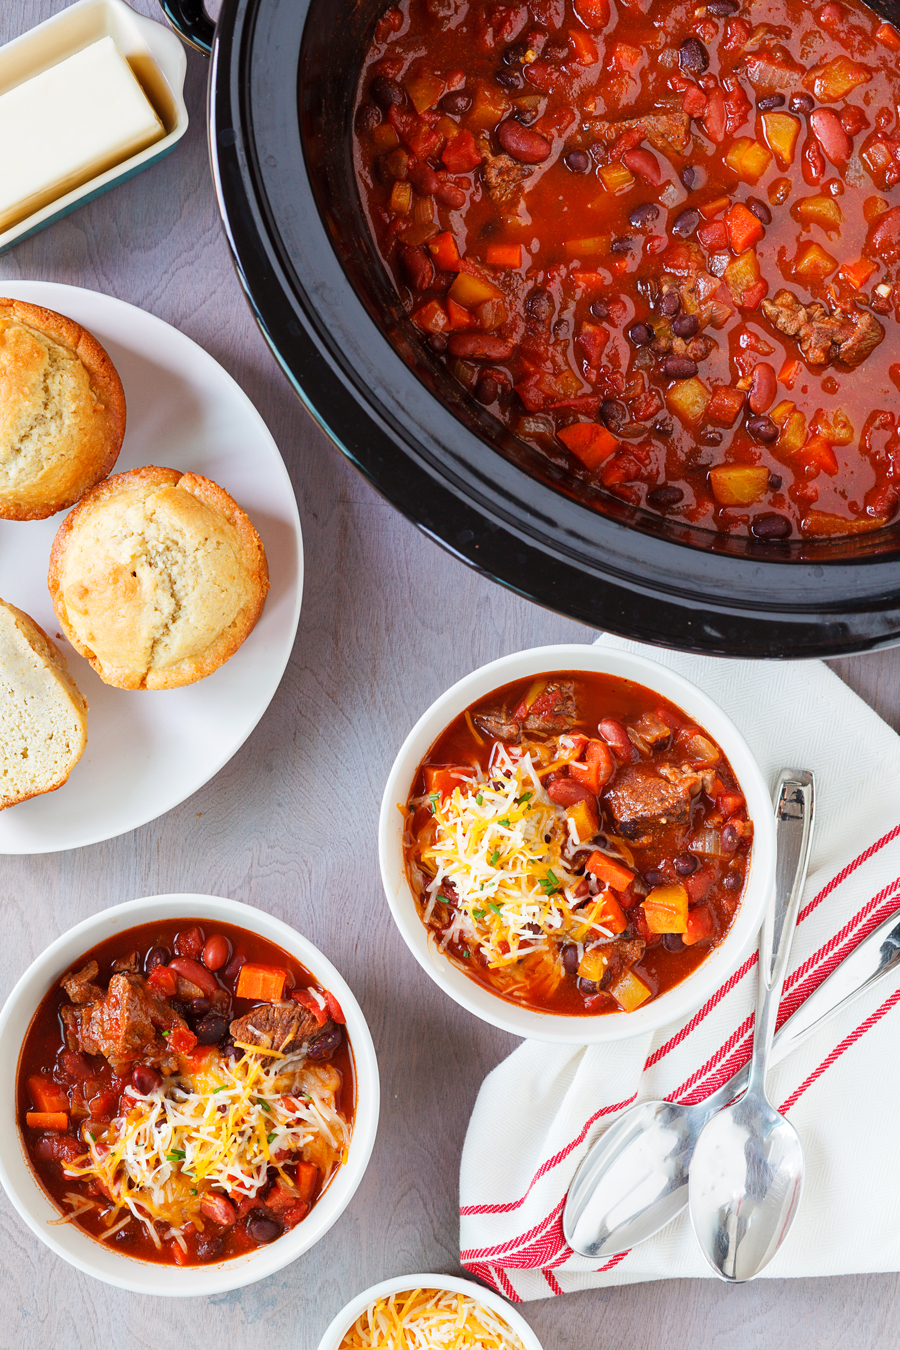 This Slow Cooker Venison Chili is the perfect weeknight meal. Pair this chili with a fresh garden salad and homemade bread for a hearty meal.